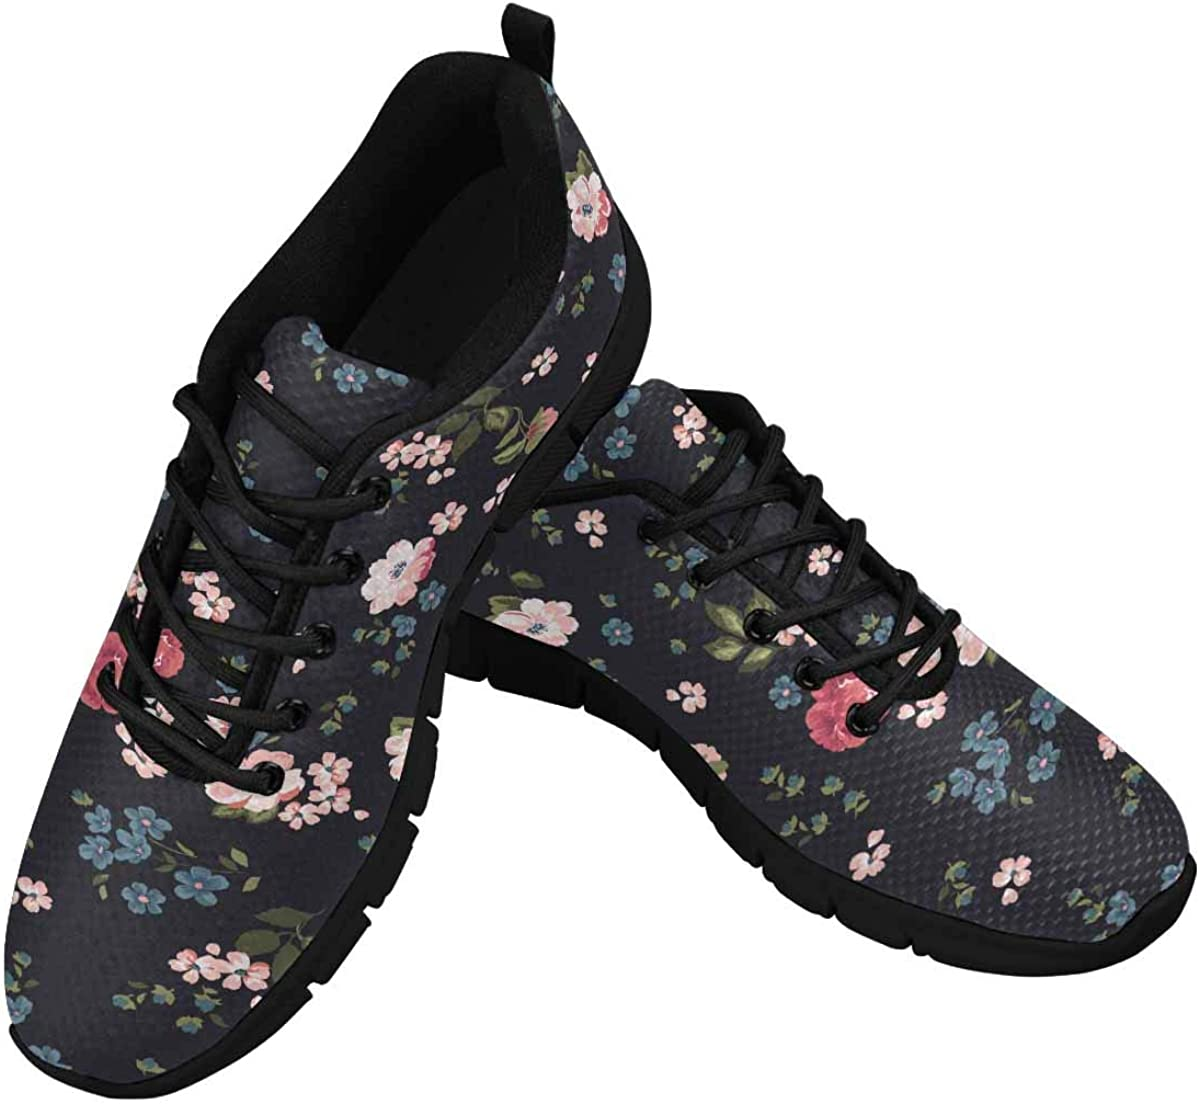 INTERESTPRINT Trendy Floral Pattern Women's Lace Up Running Comfort Sports Sneakers